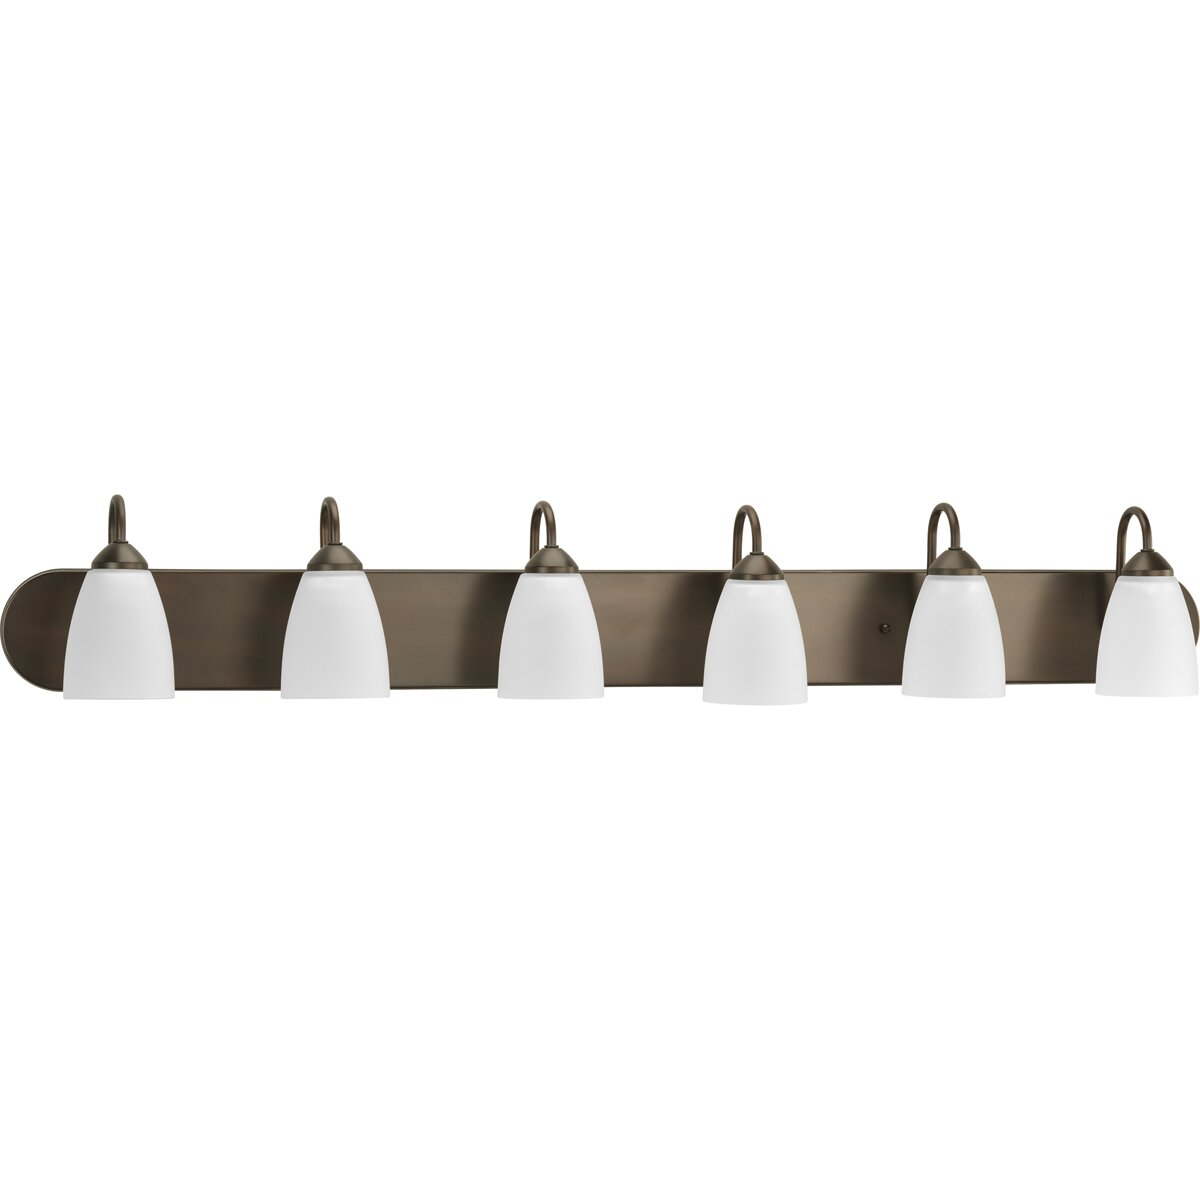 Progress lighting 6 light bath vanity light reviews for 6 light bathroom vanity light